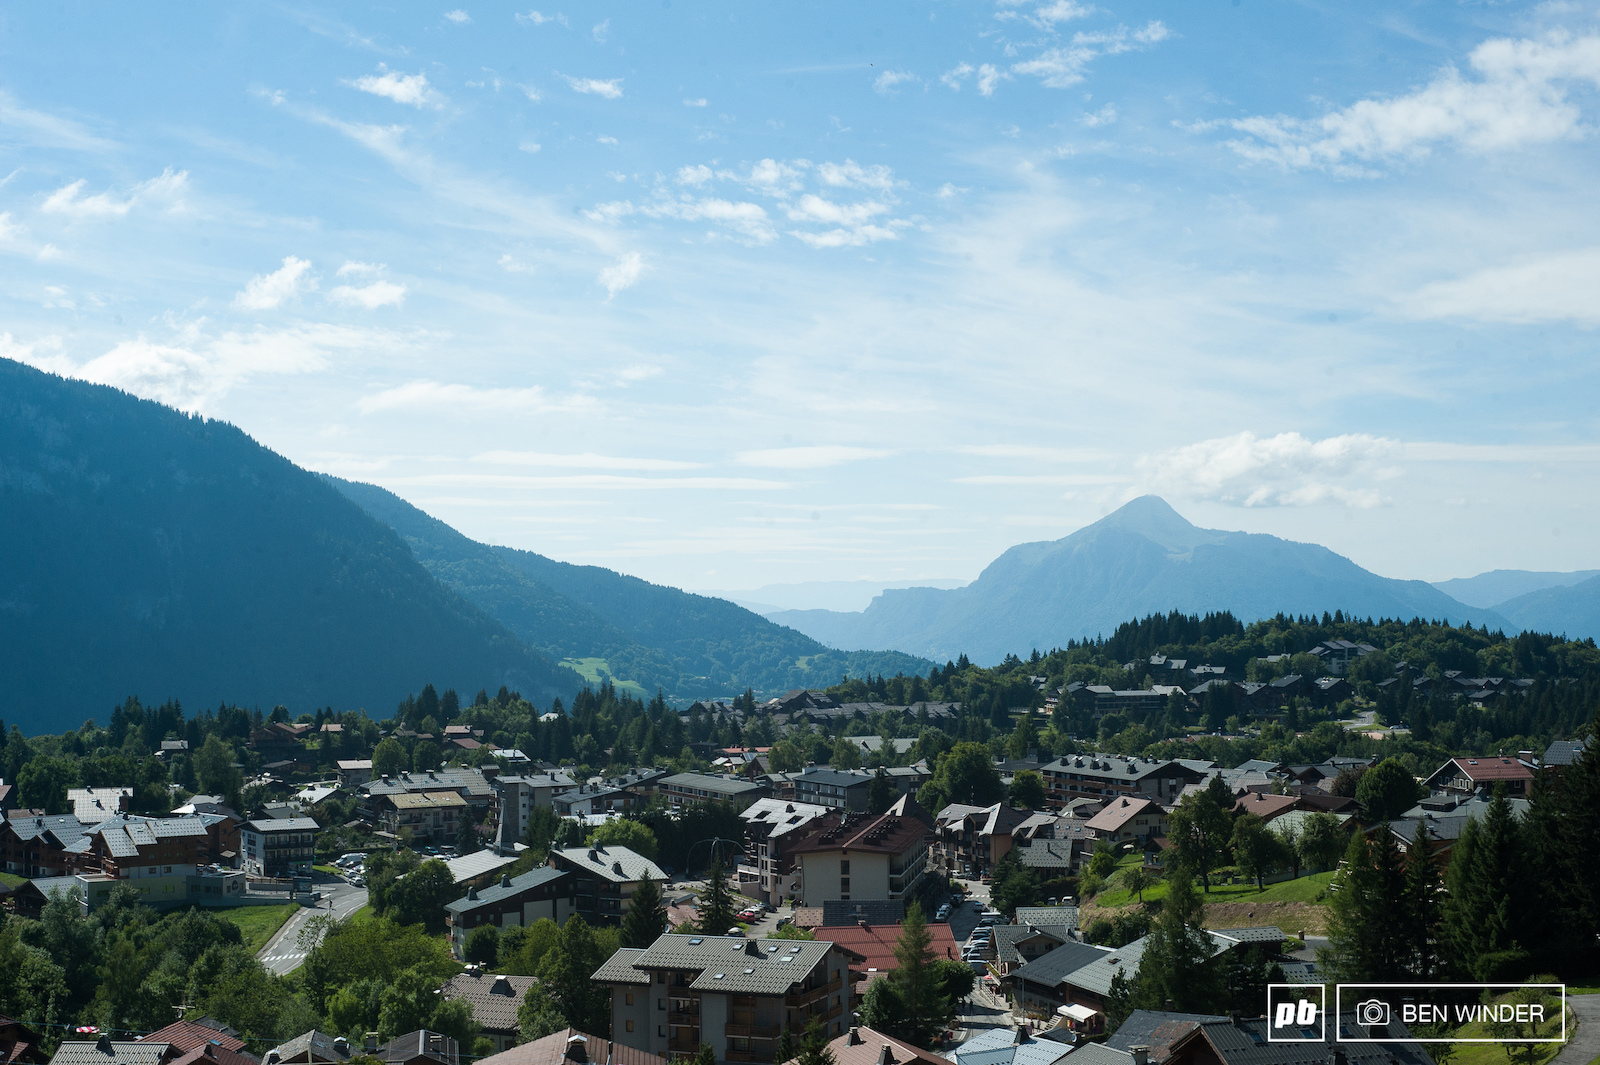 A little picturesque town parked on the edge of the Alps.